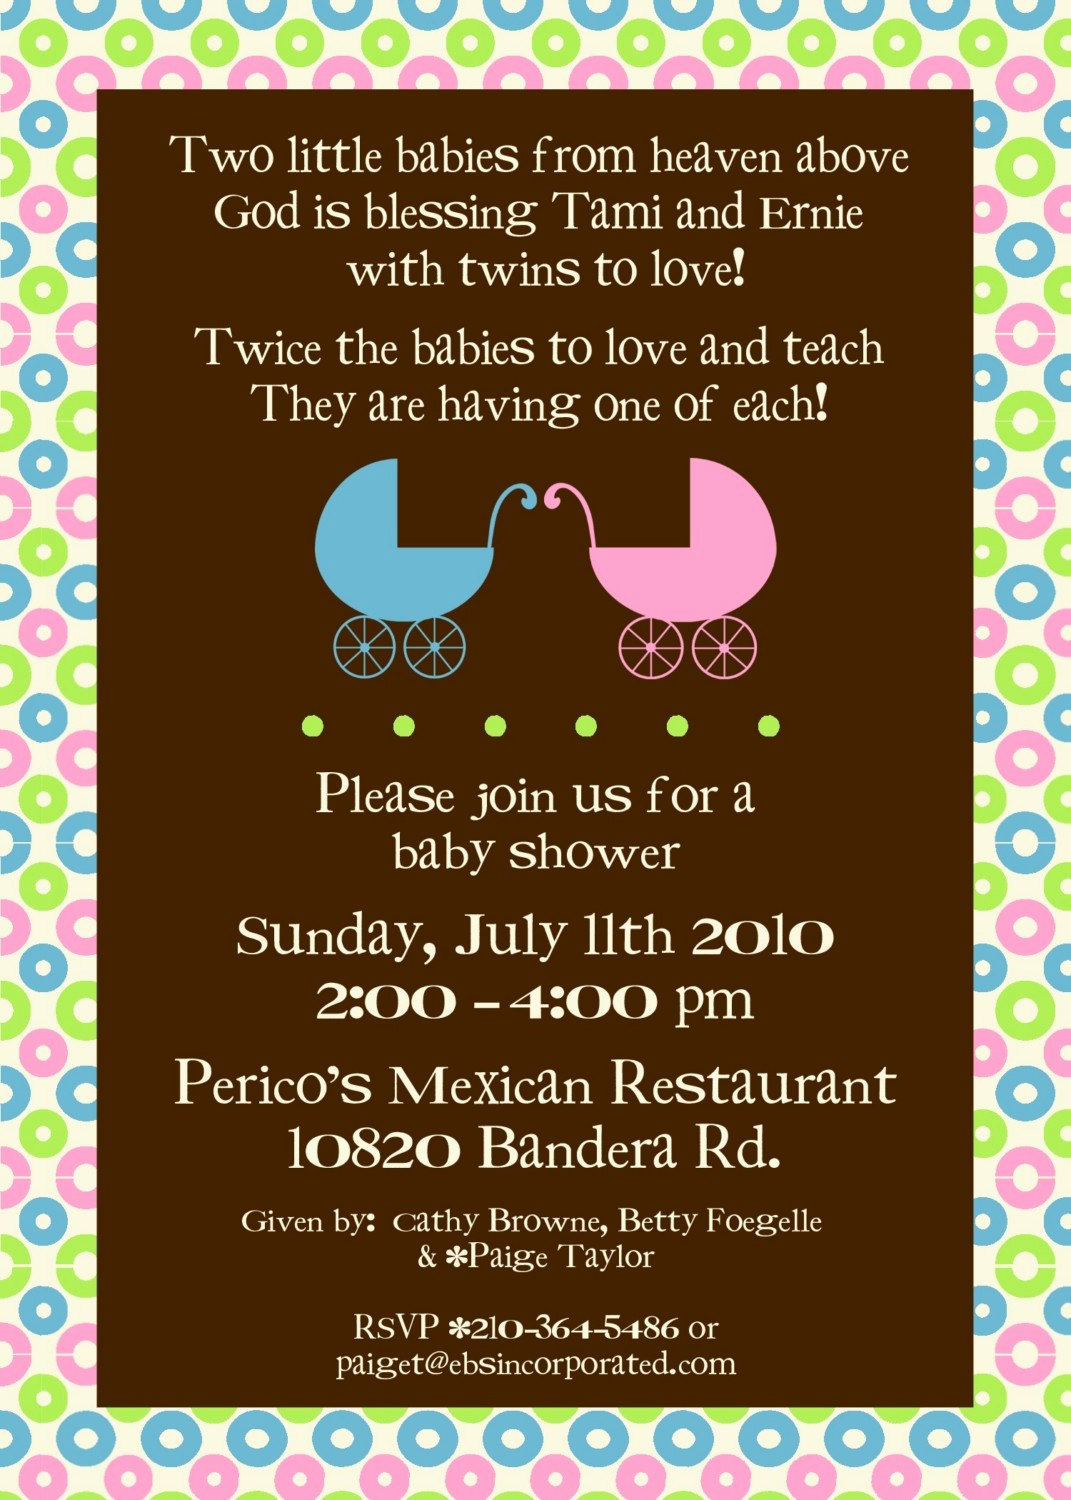 Double Baby Shower Invitation Wording Awesome Twin Carriage or Owl Baby Shower Invitation Visit My Shop to